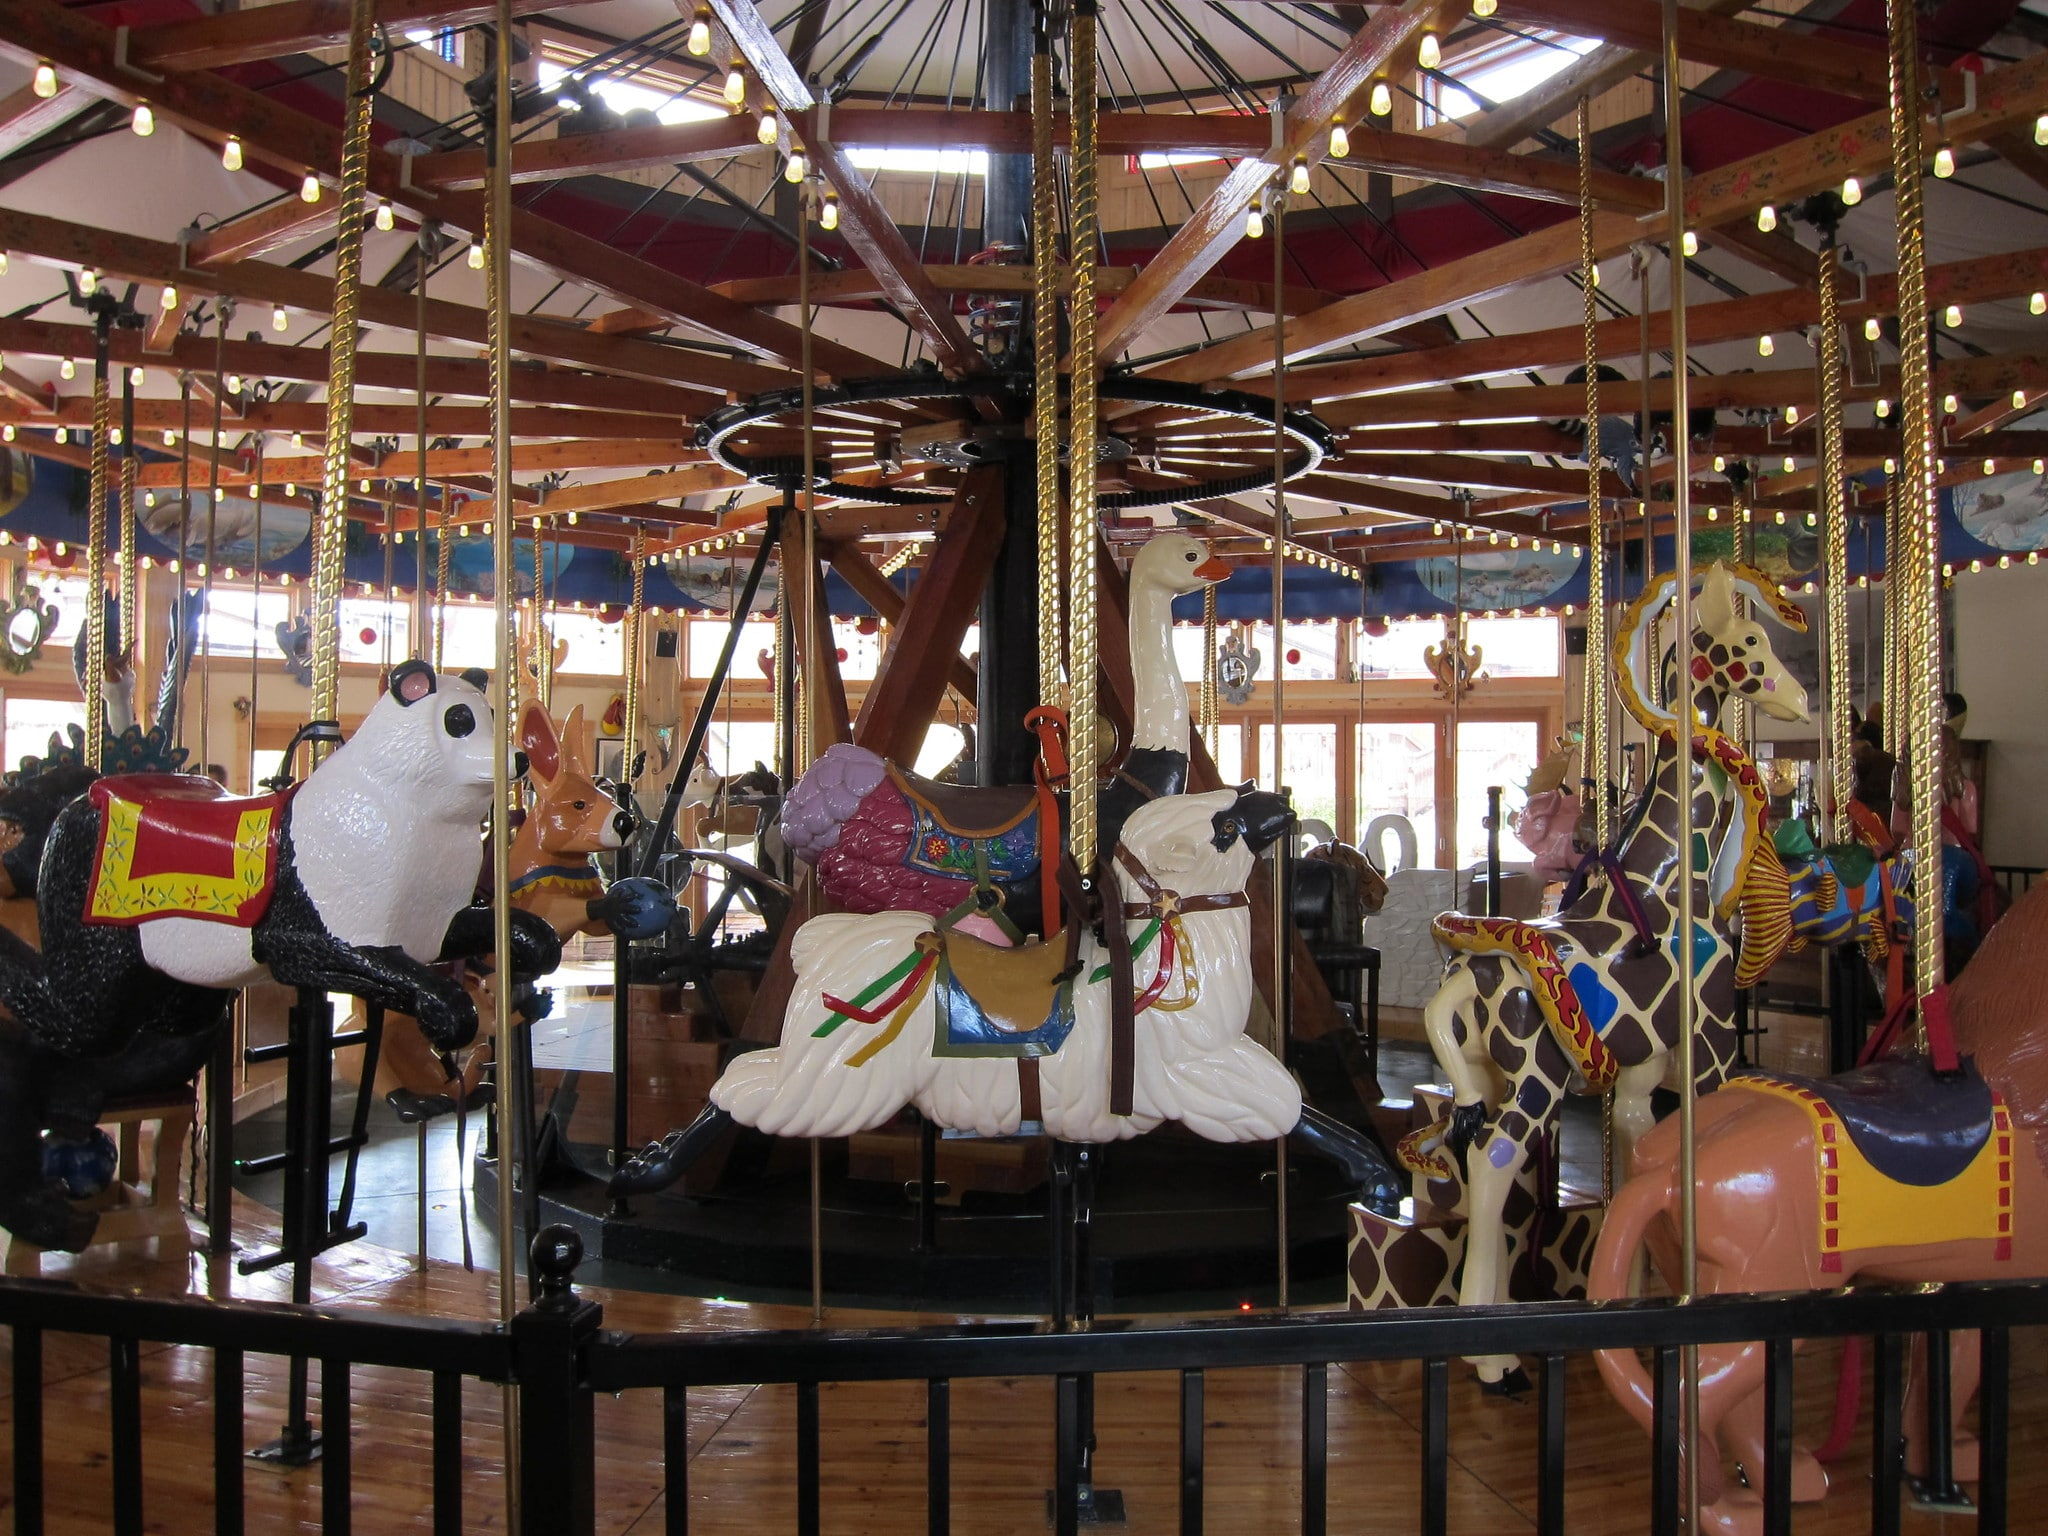 image of carousel of happiness